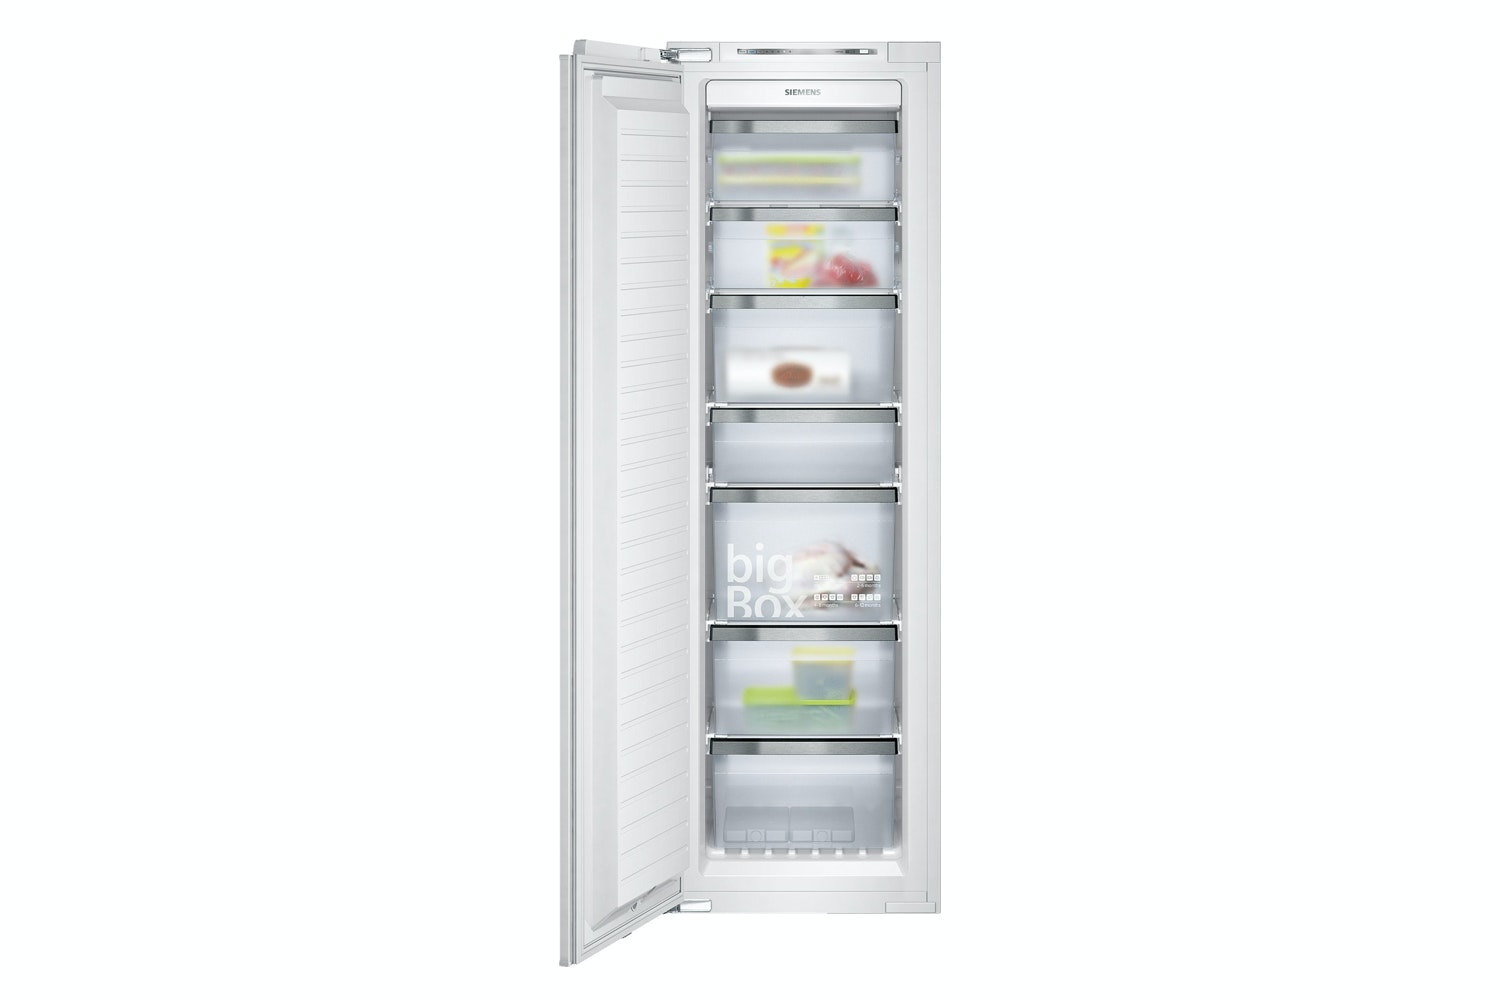 Siemens 210L iQ700 Built-in Upright Freezer | GI38NA55GB